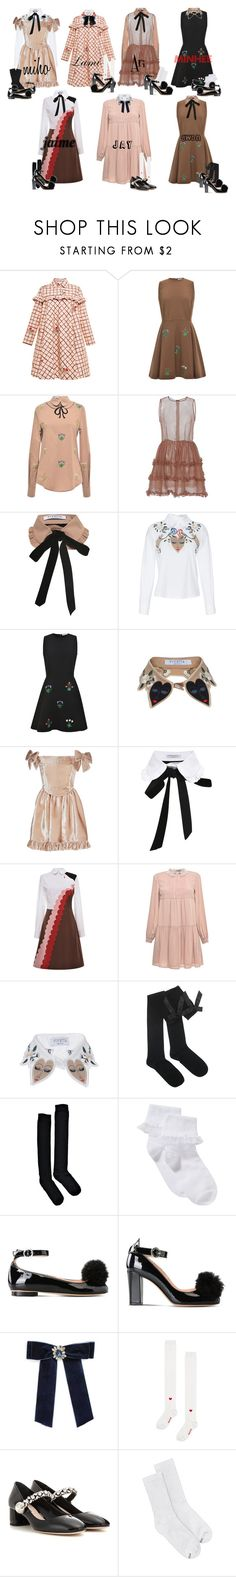 """Amore - Always"" by mikki102 ❤ liked on Polyvore featuring VIVETTA, Boohoo, John Lewis, Boutique Moschino, Cara, Miu Miu, Hanes and Falke"